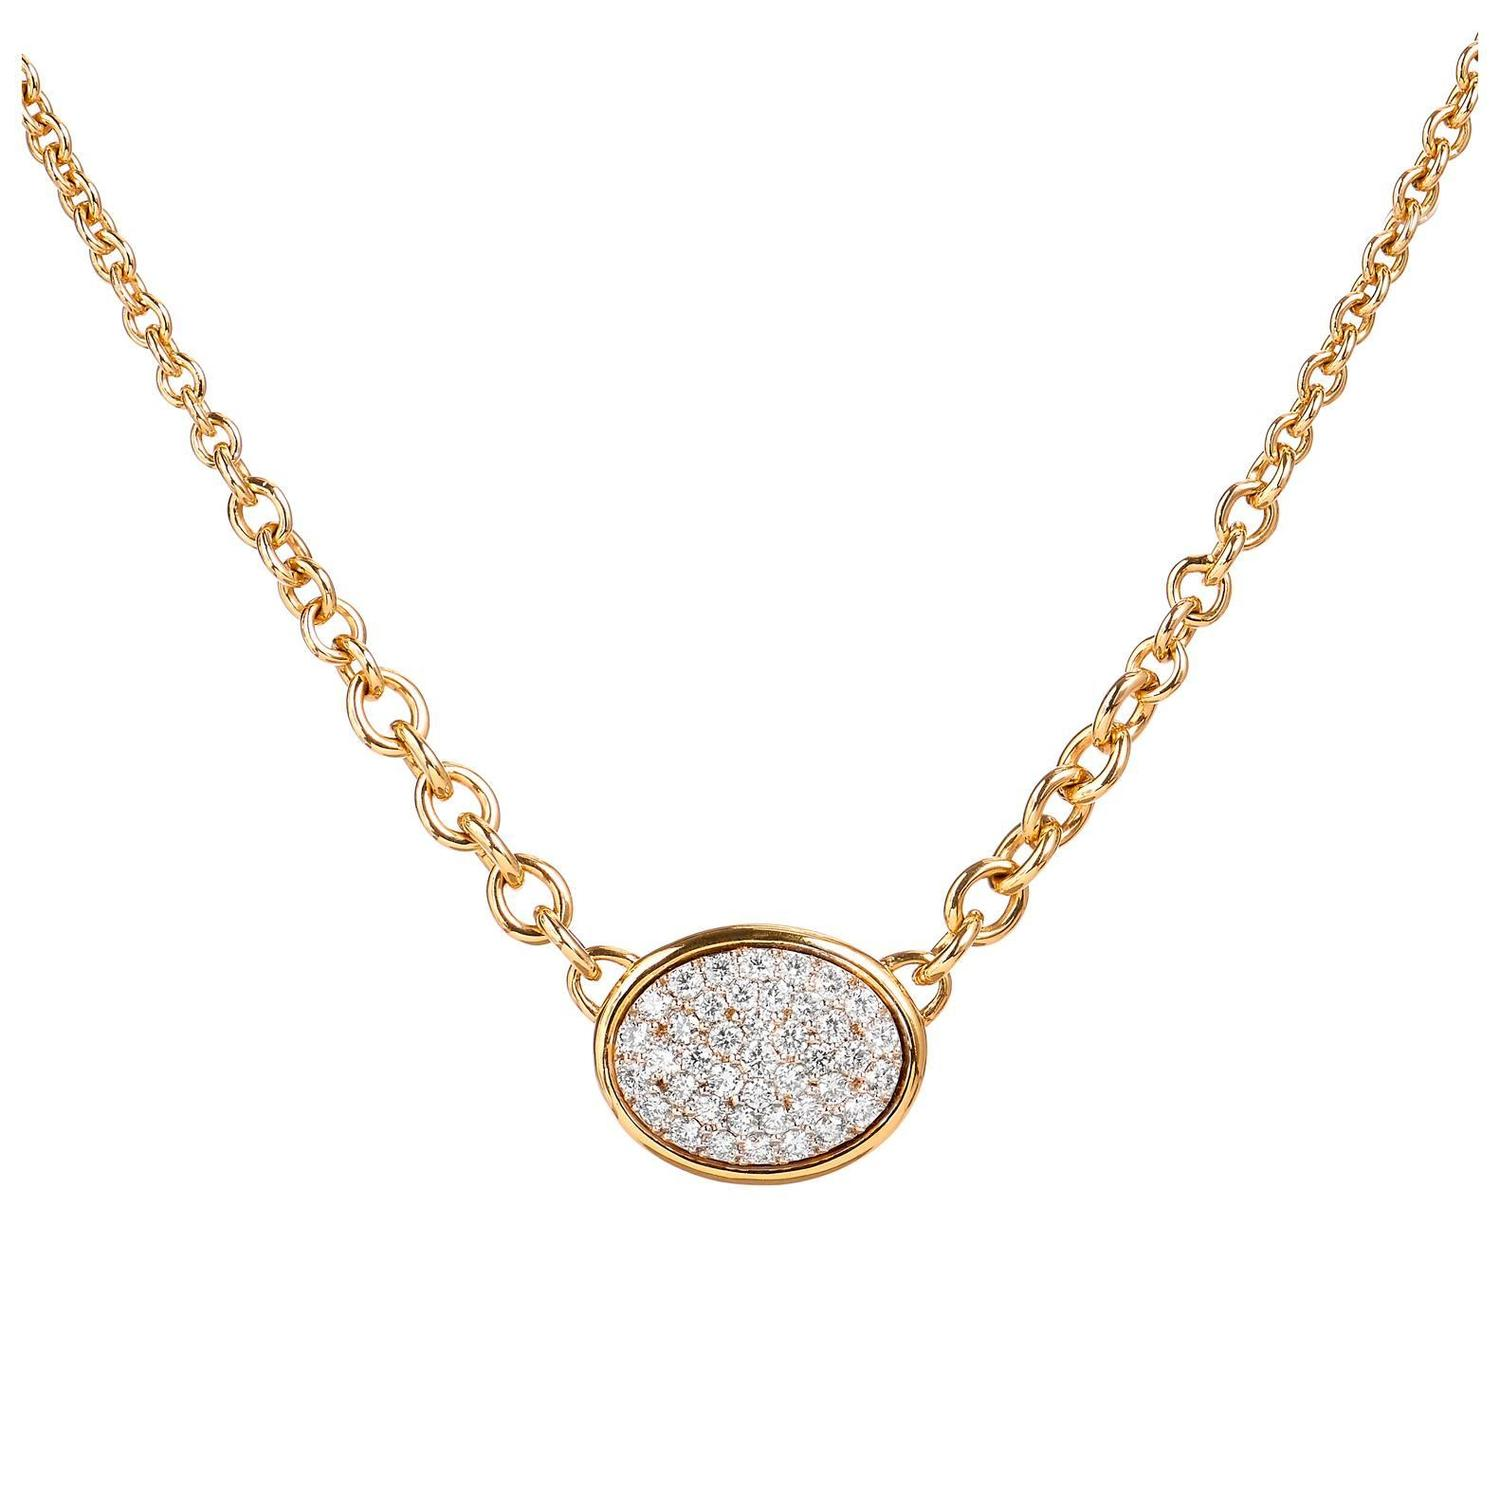 Oval Shape Pave Diamond Necklace For Sale At 1stdibs. Coper Rings. Jewellery Rings. Crystal Swarovski Beads. Godmother Bracelet. Round Cut Sapphire. Kate Spade Stud Earrings. Tiffany Diamond. Movado Luno Watches